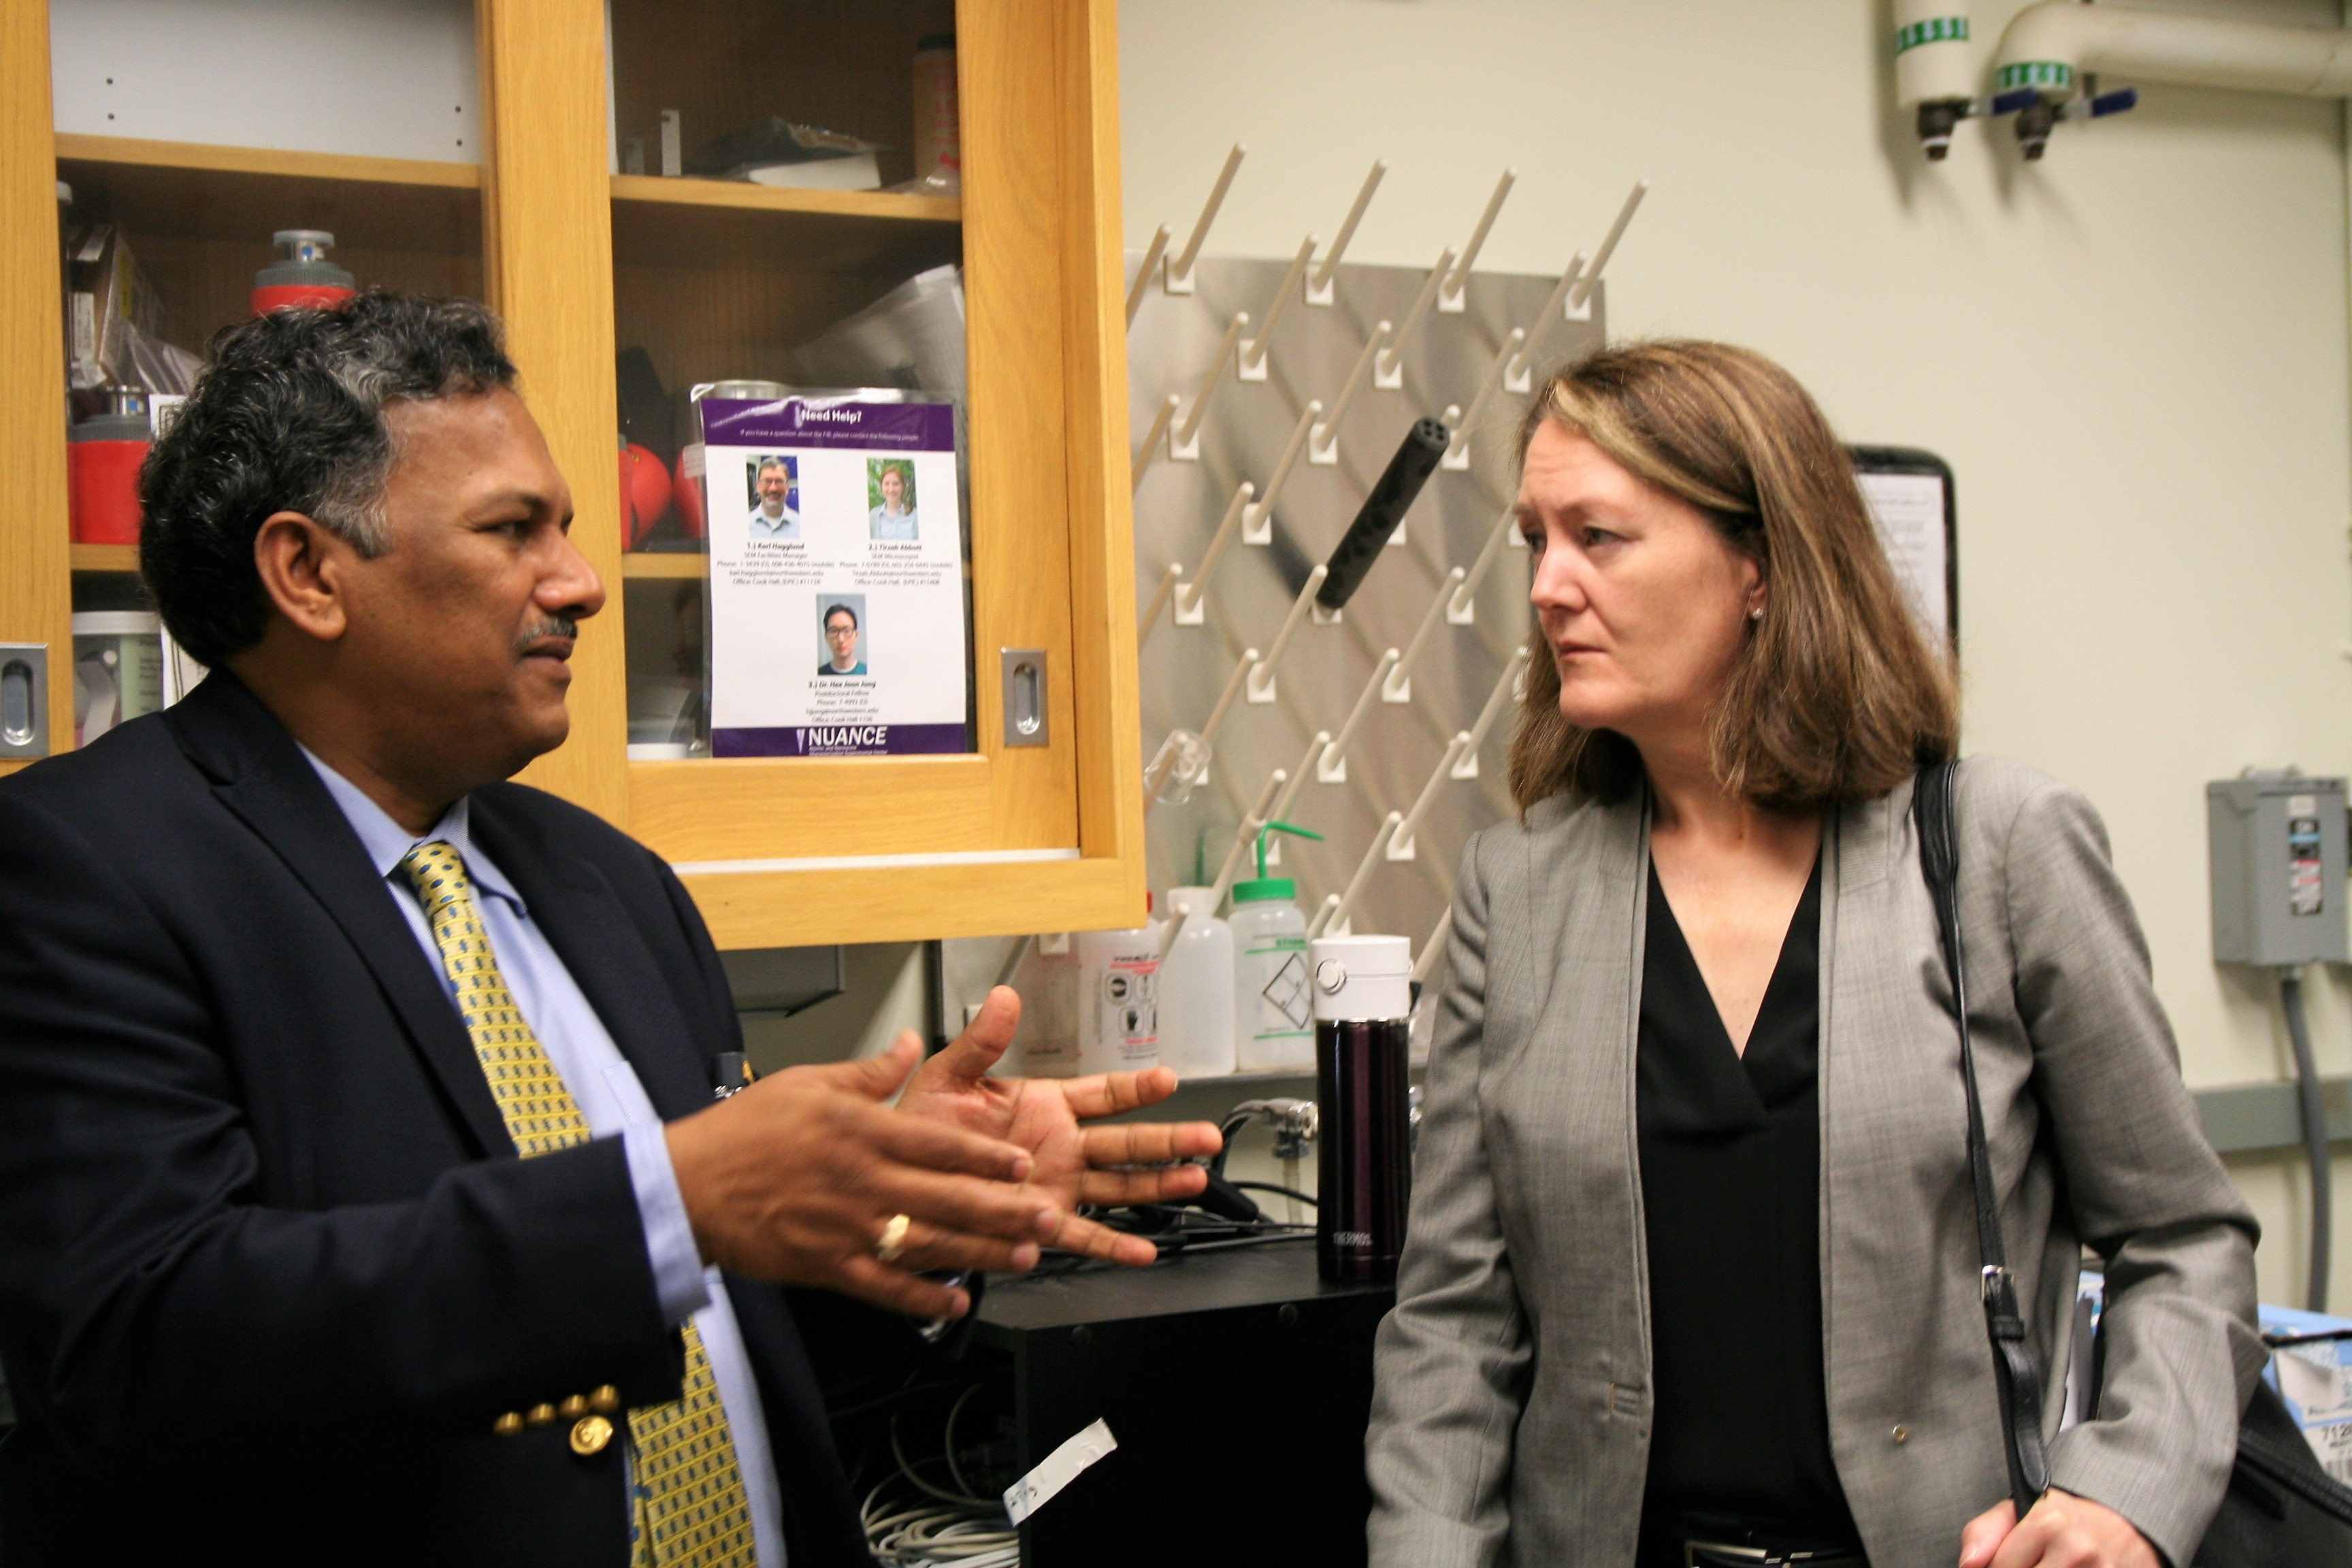 Prof. Dravid discusses NUANCE Facilities with Dr. Benson Tolle.